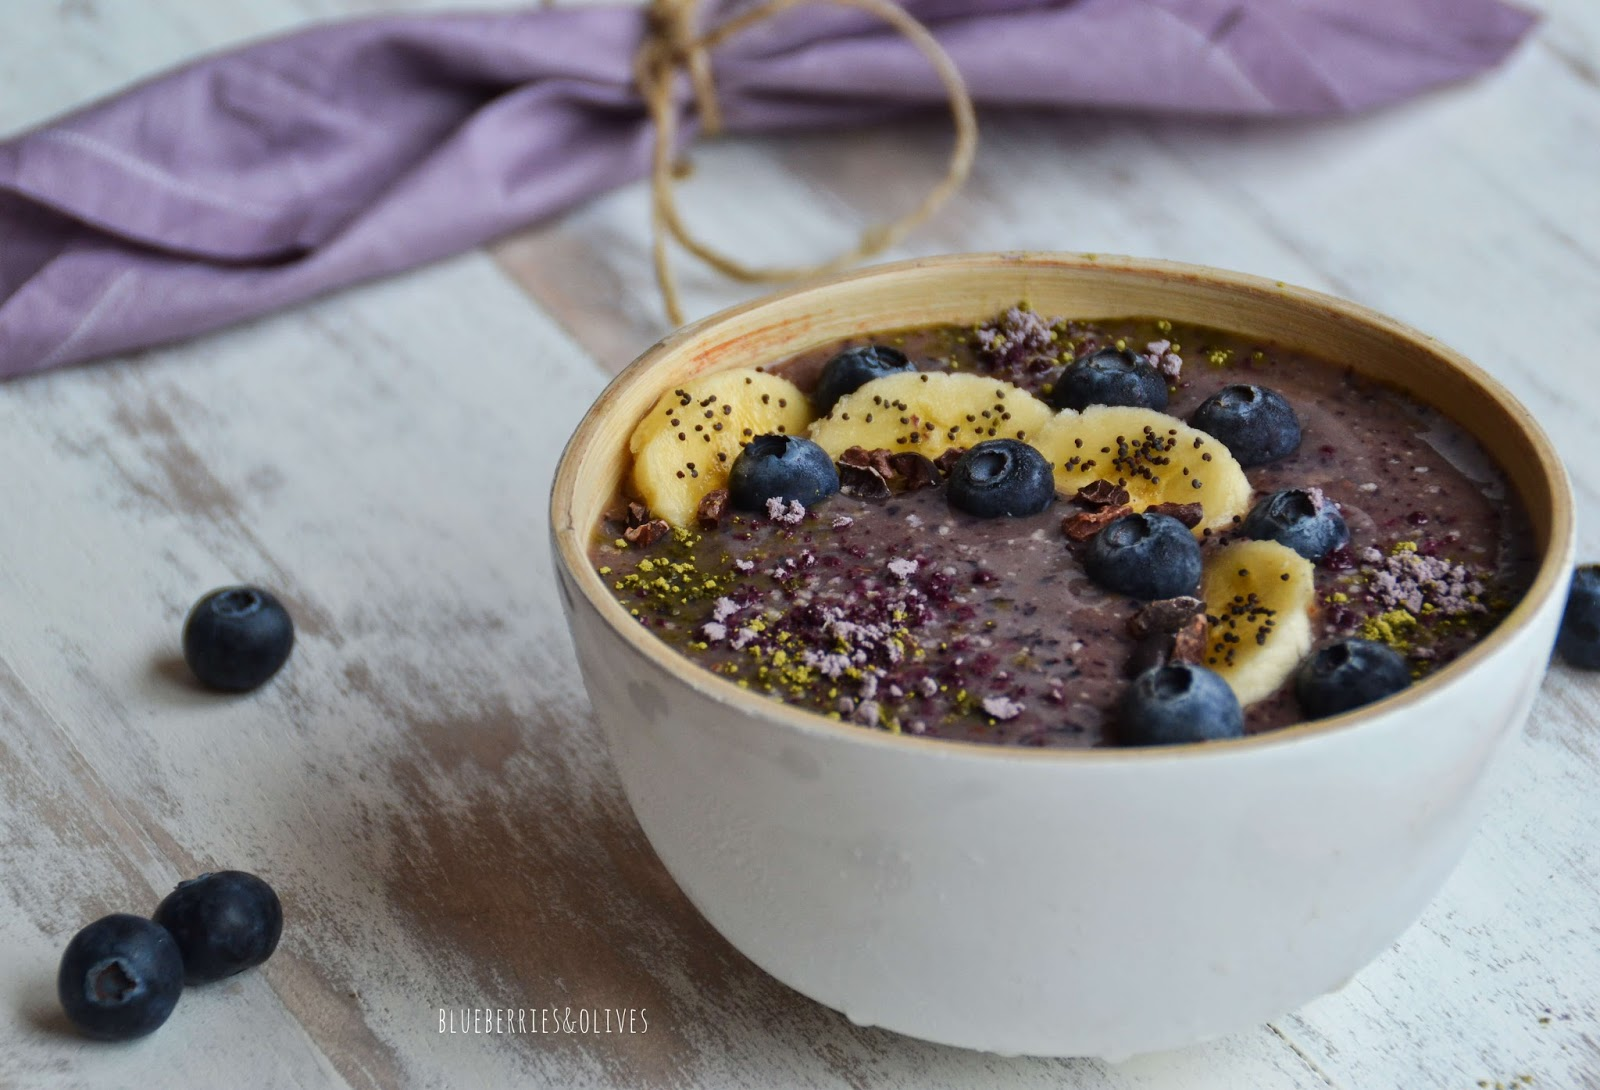 AÇAI, BLUEBERRY AND BANANA SMOOTHIE BOWL